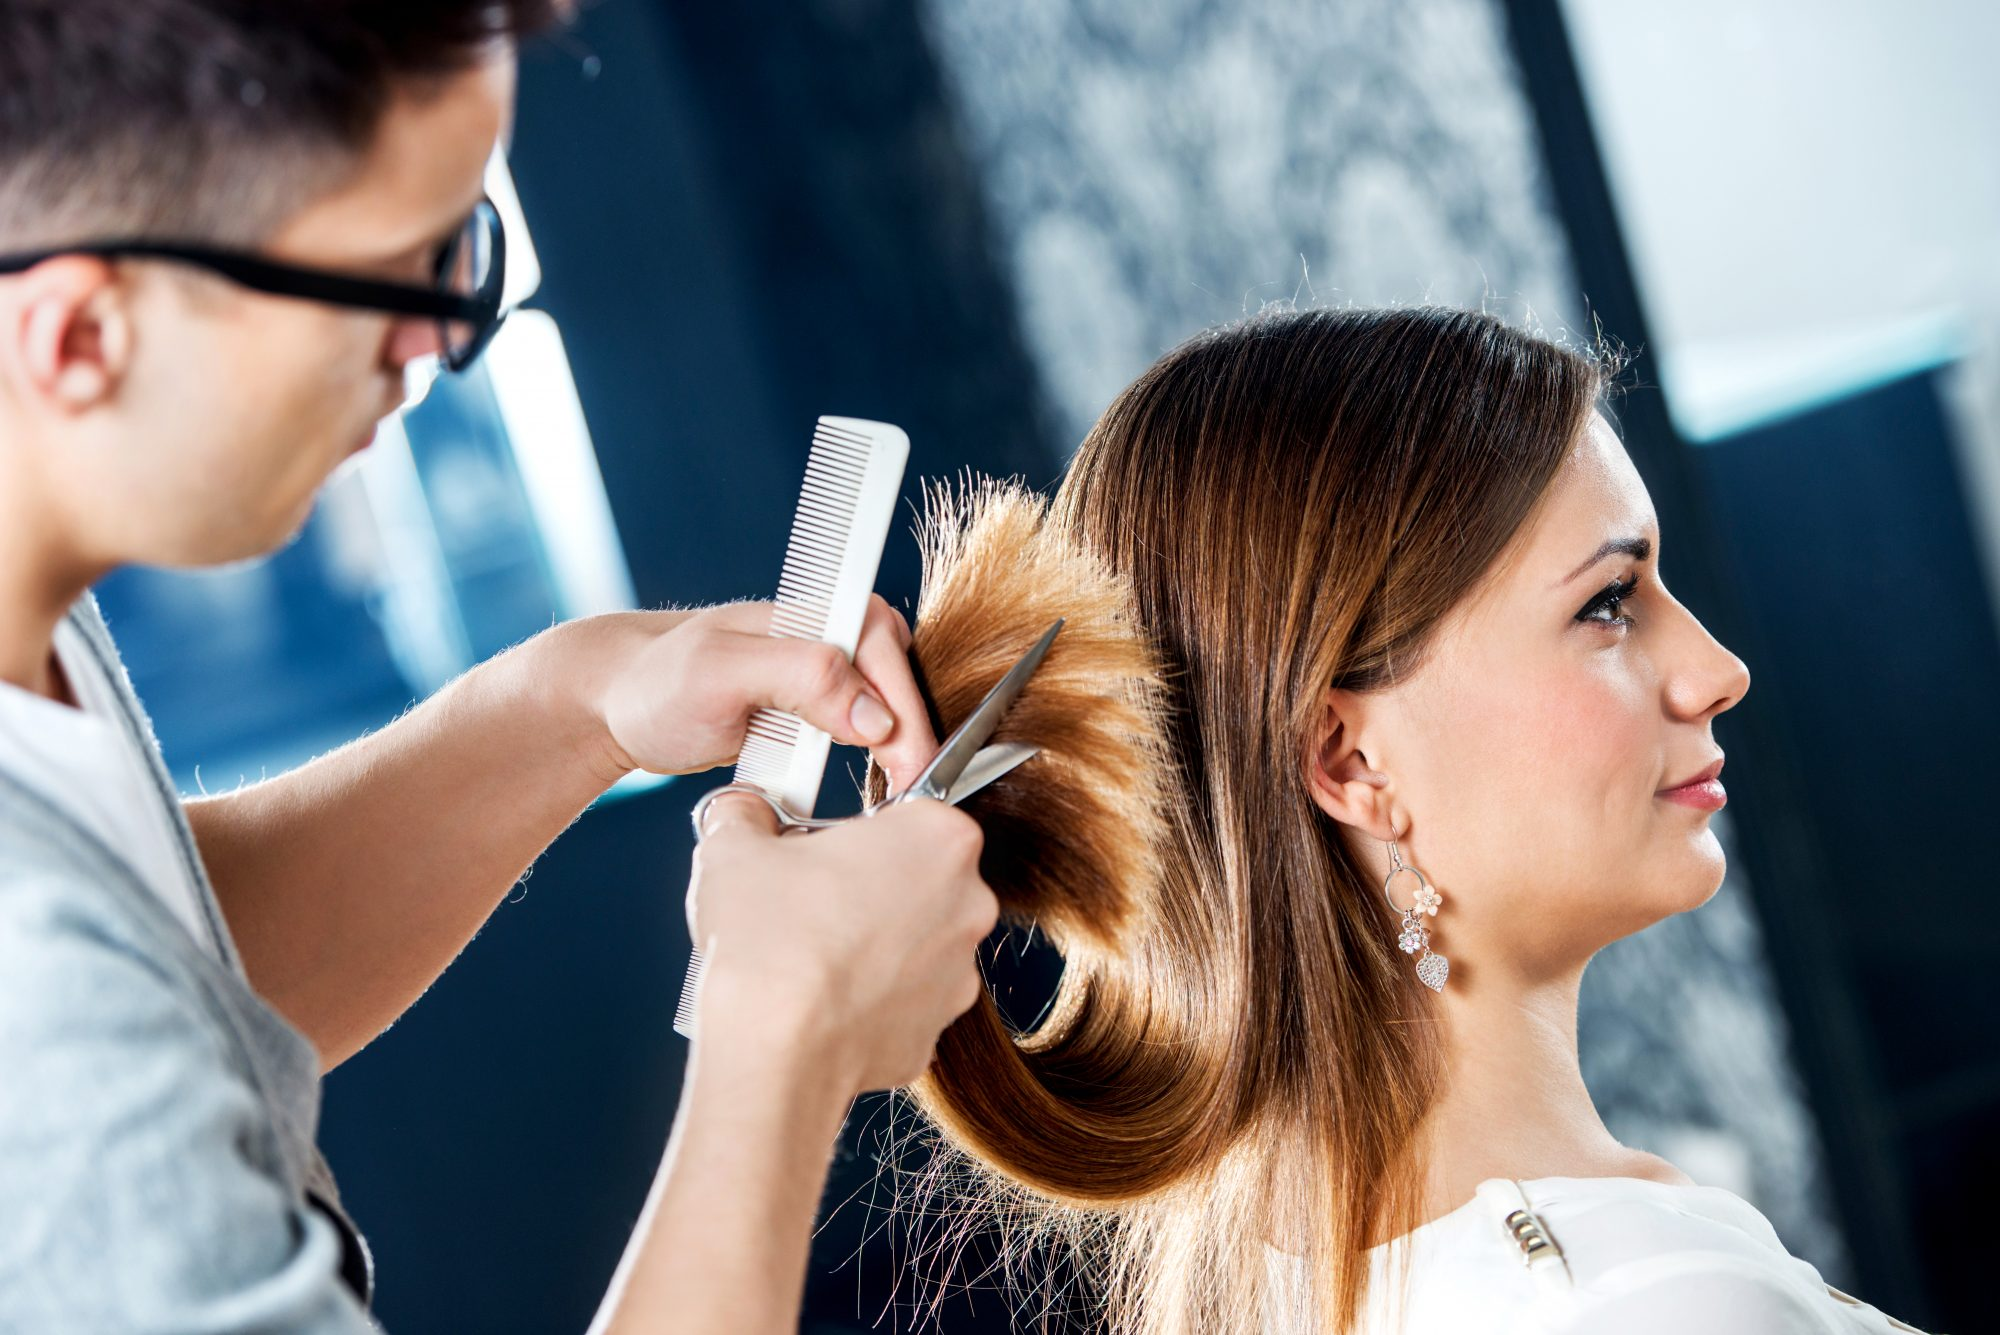 Why Everyone Is Booking Appointments To Get Their Hair Cut Dry